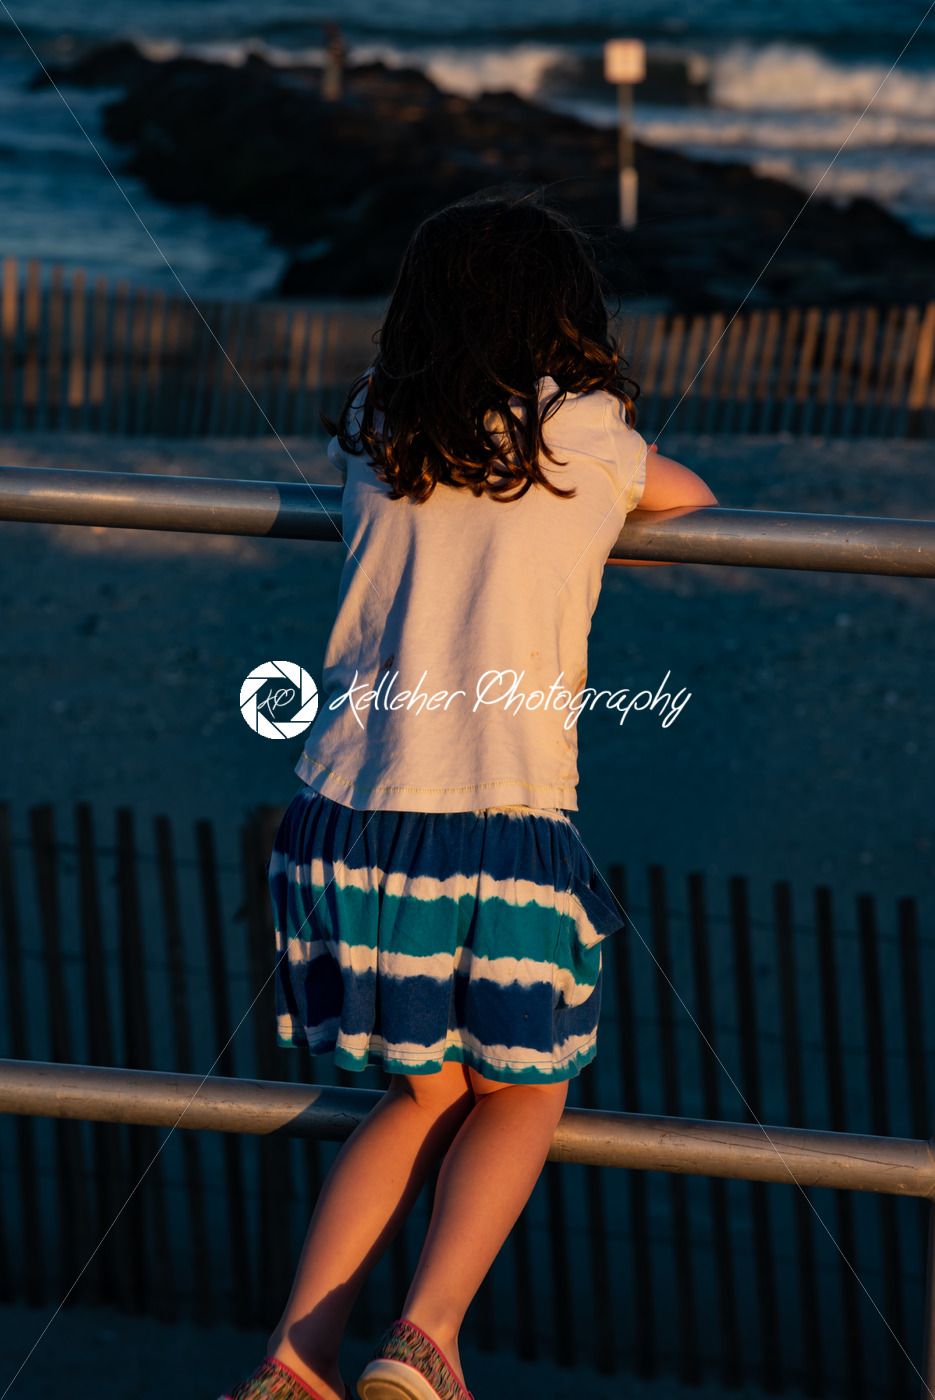 Young cute little girl on the boardwalk with back to camera looking towards the ocean surf - Kelleher Photography Store